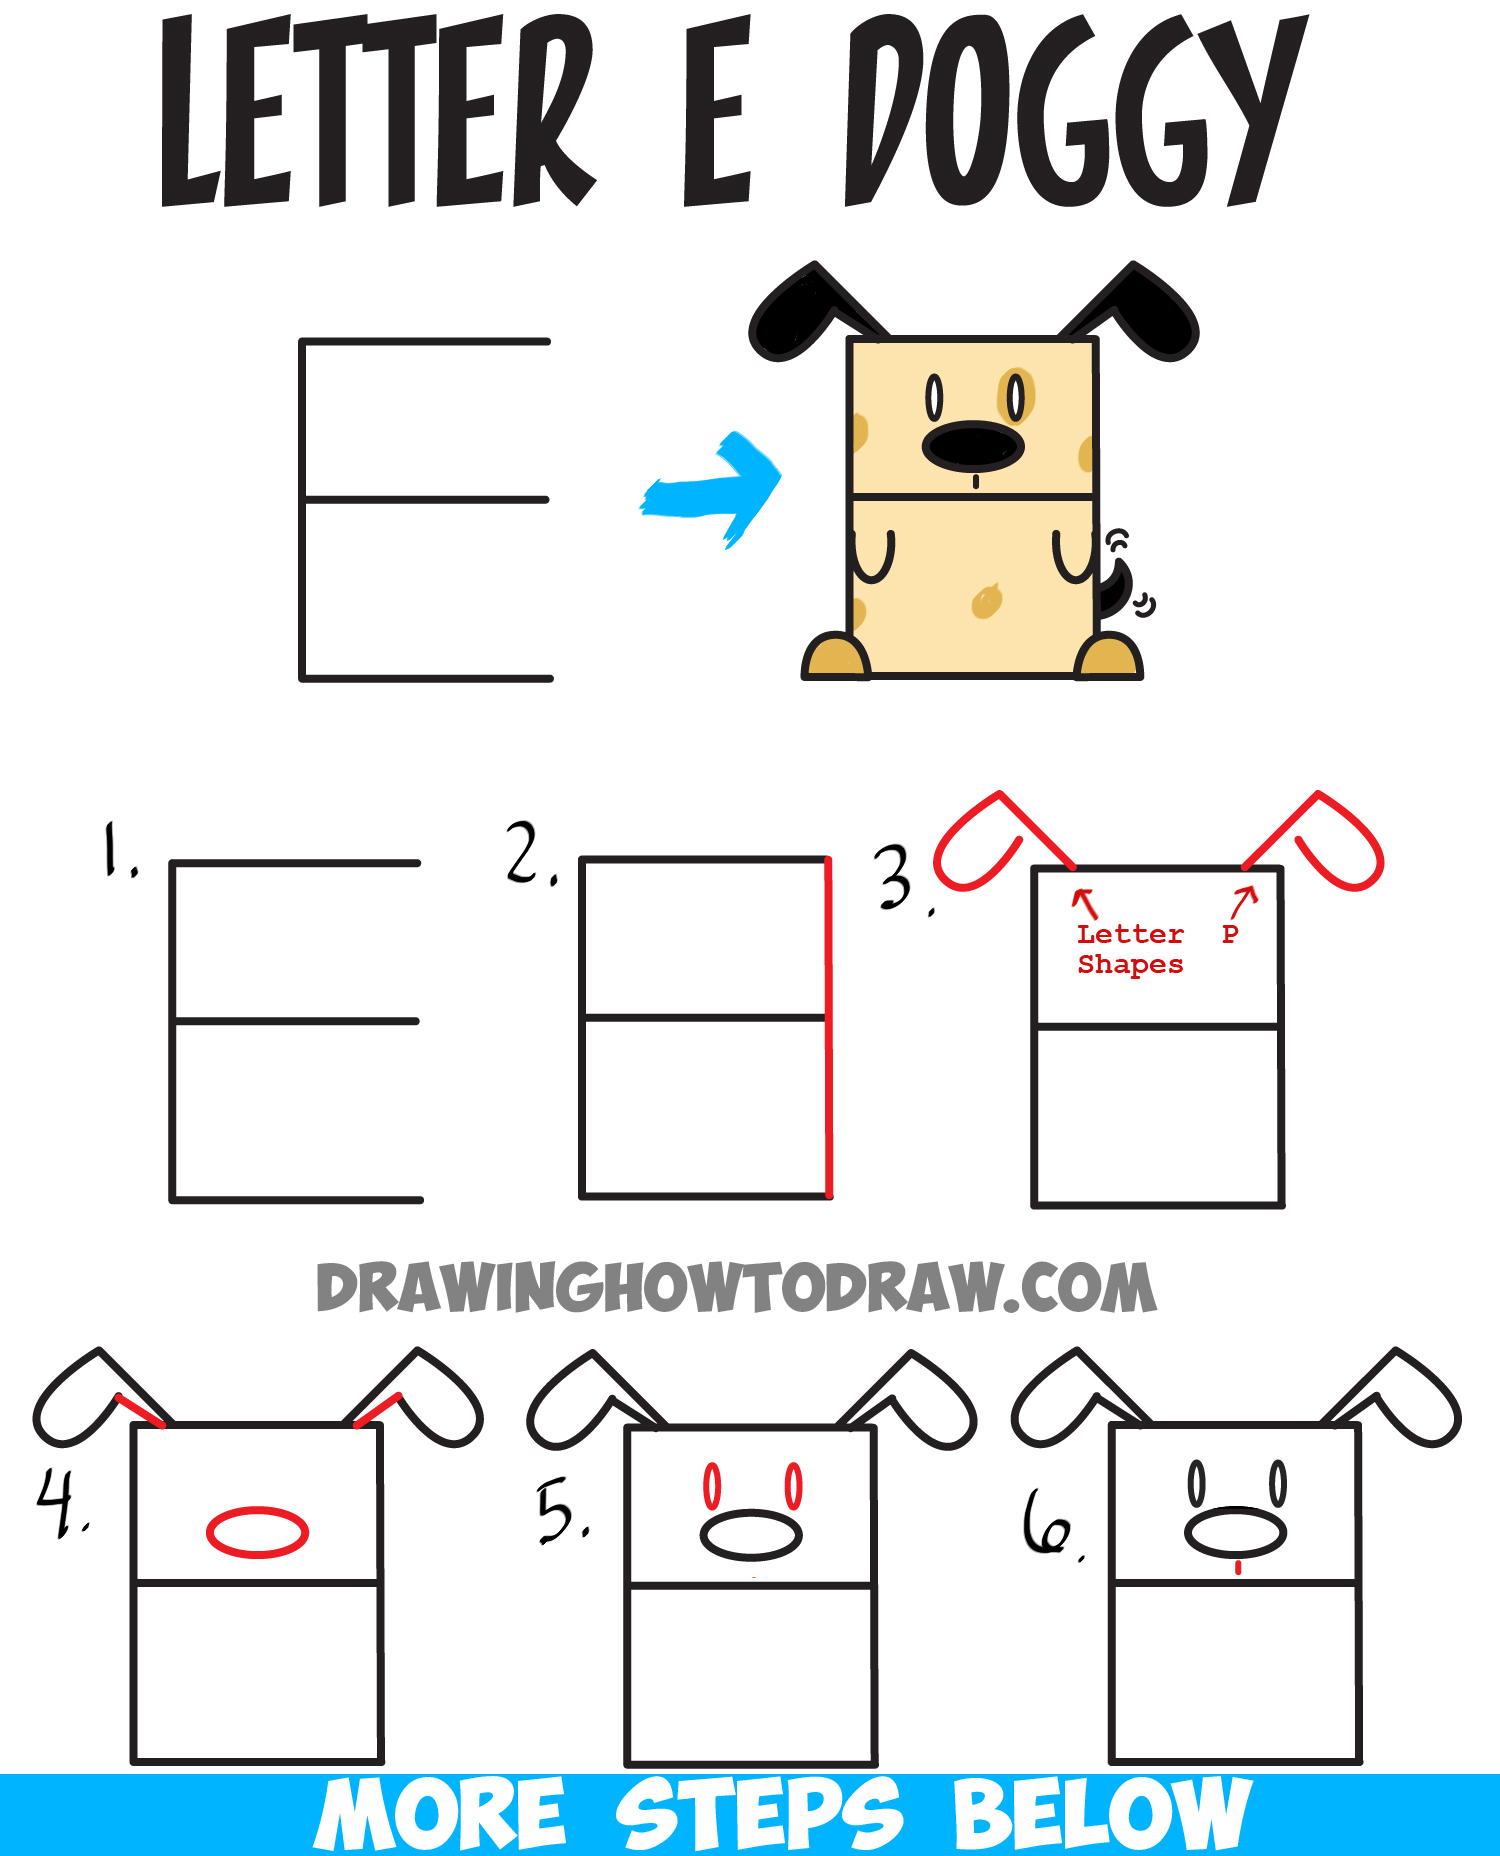 How to Draw a Cartoon Dog from Uppercase Letter E : Easy Steps Tutorial for Kids